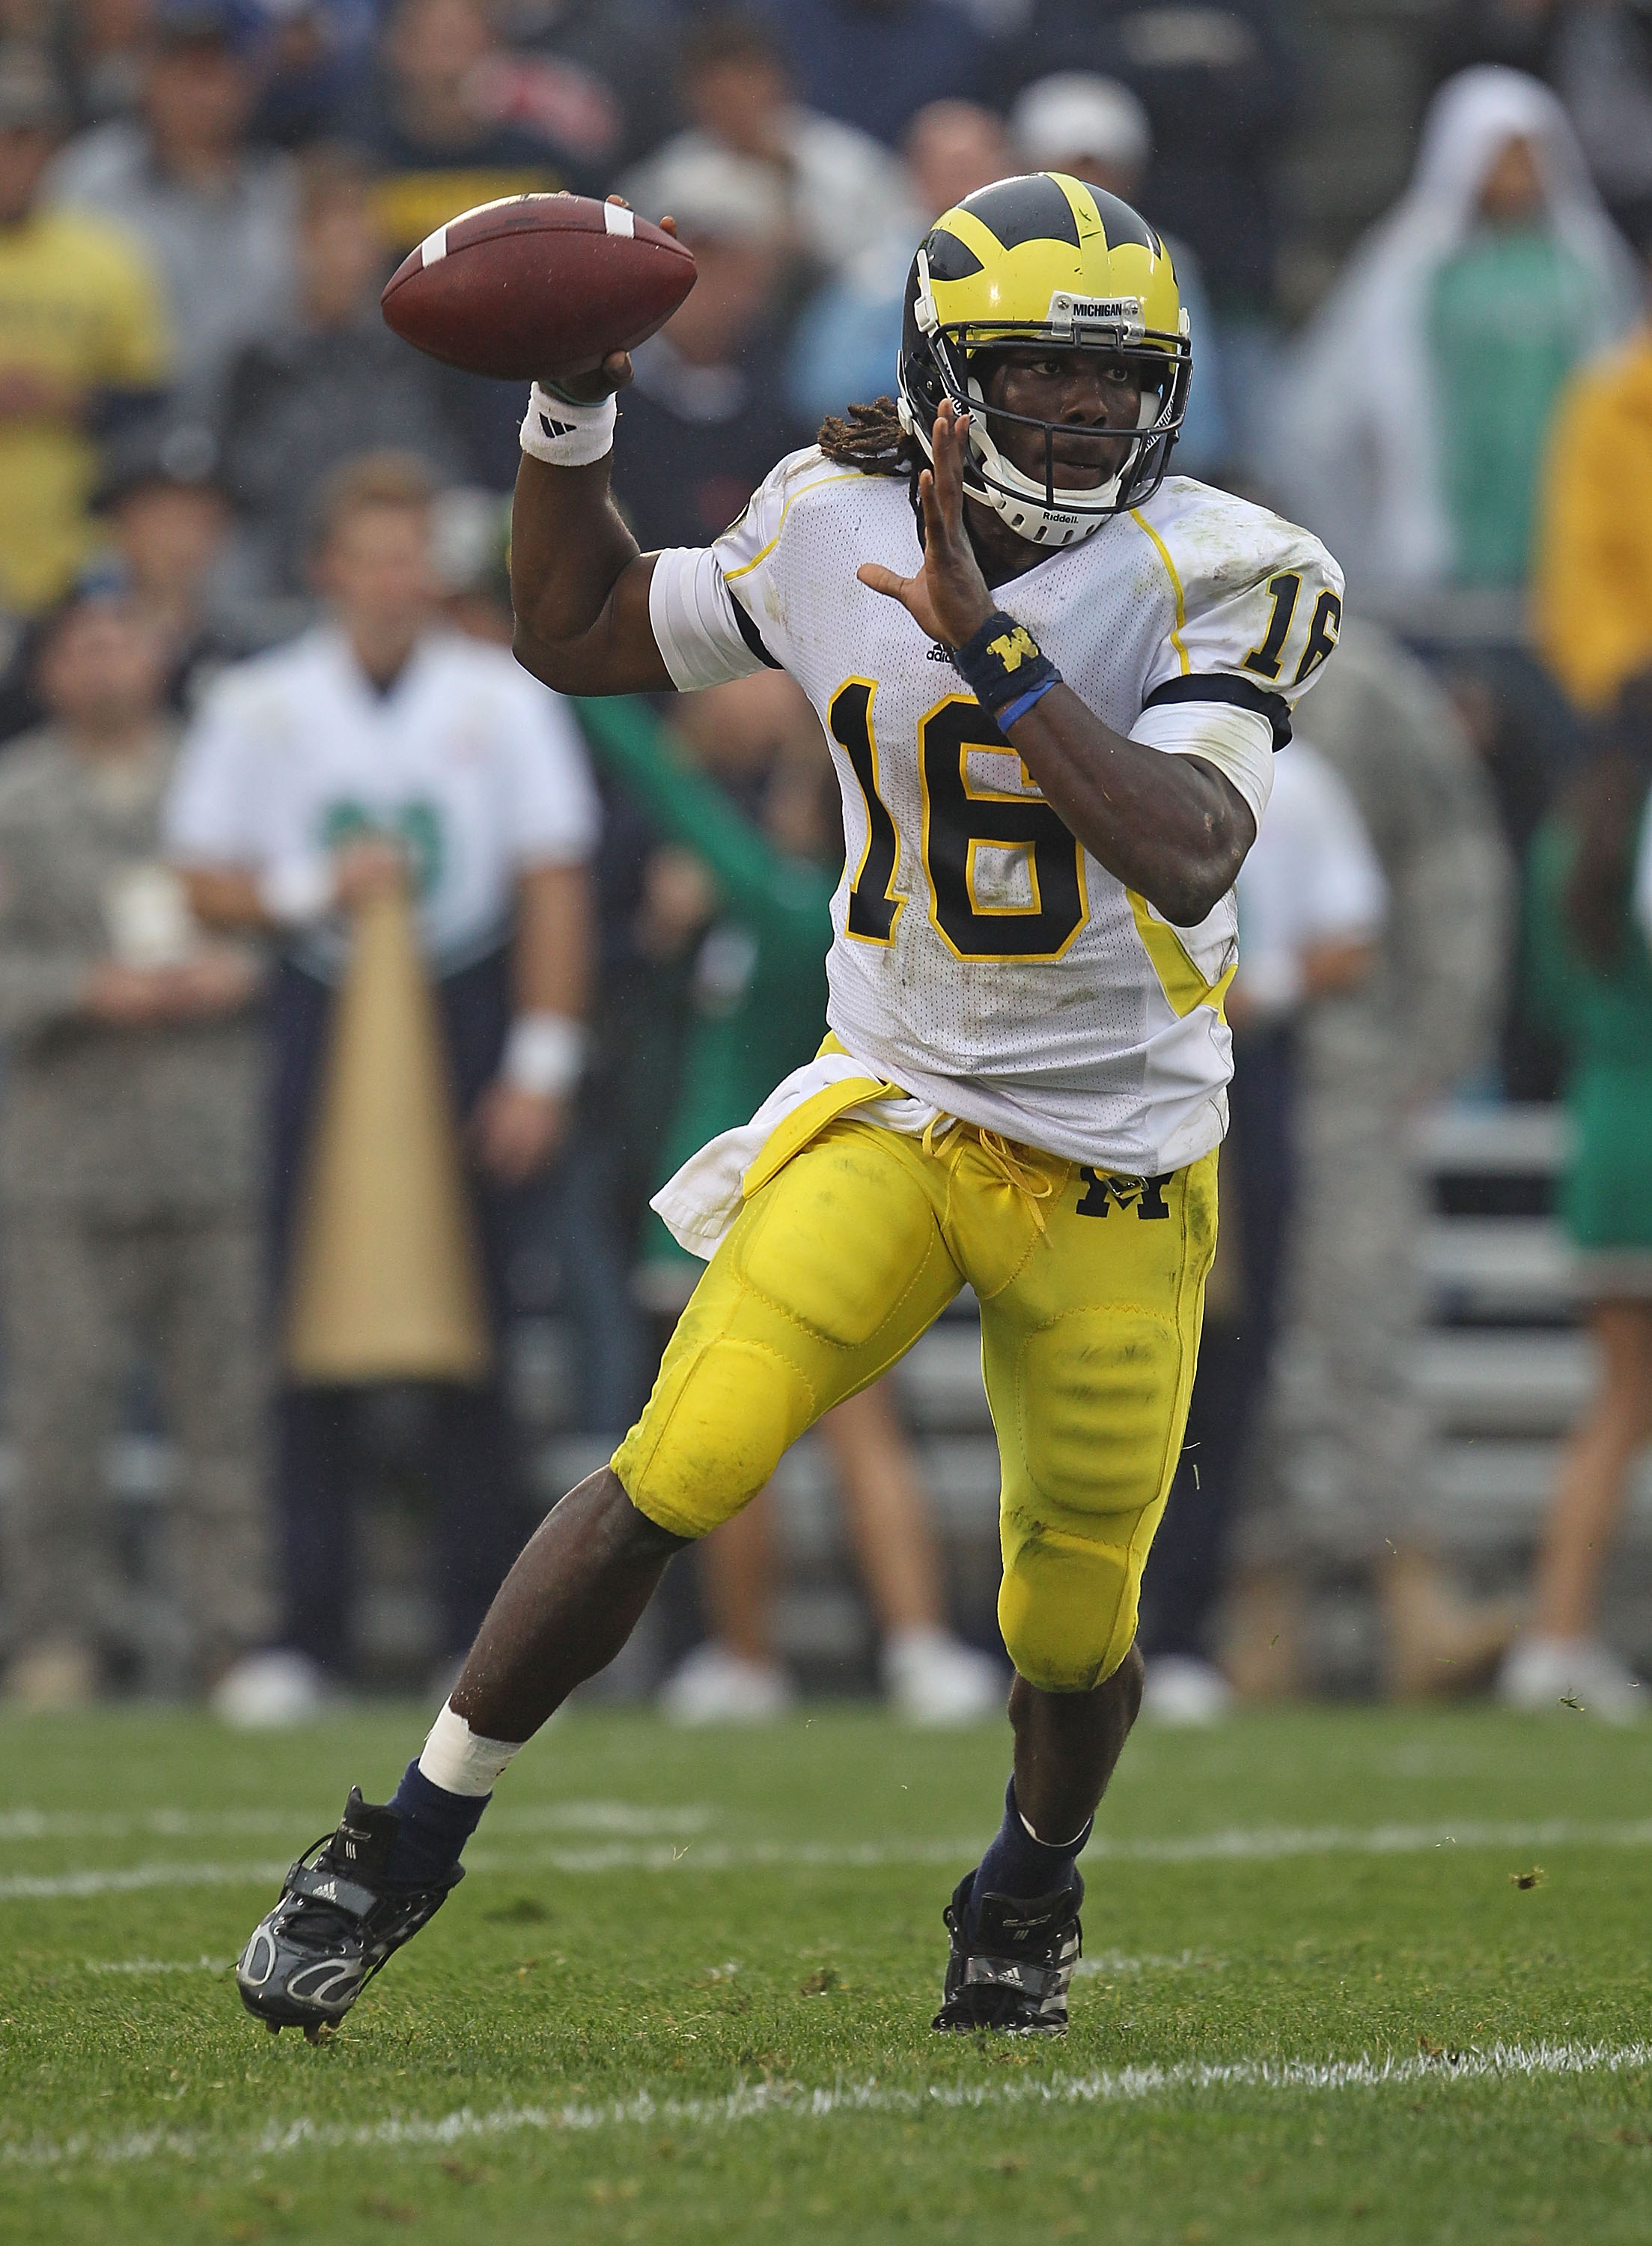 SOUTH BEND, IN - SEPTEMBER 11: Denard Robinson #16 of the Michigan Wolverines looks to pass against the Notre Dame Fighting Irish at Notre Dame Stadium on September 11, 2010 in South Bend, Indiana. Michigan defeated Notre Dame 28-24. (Photo by Jonathan Da